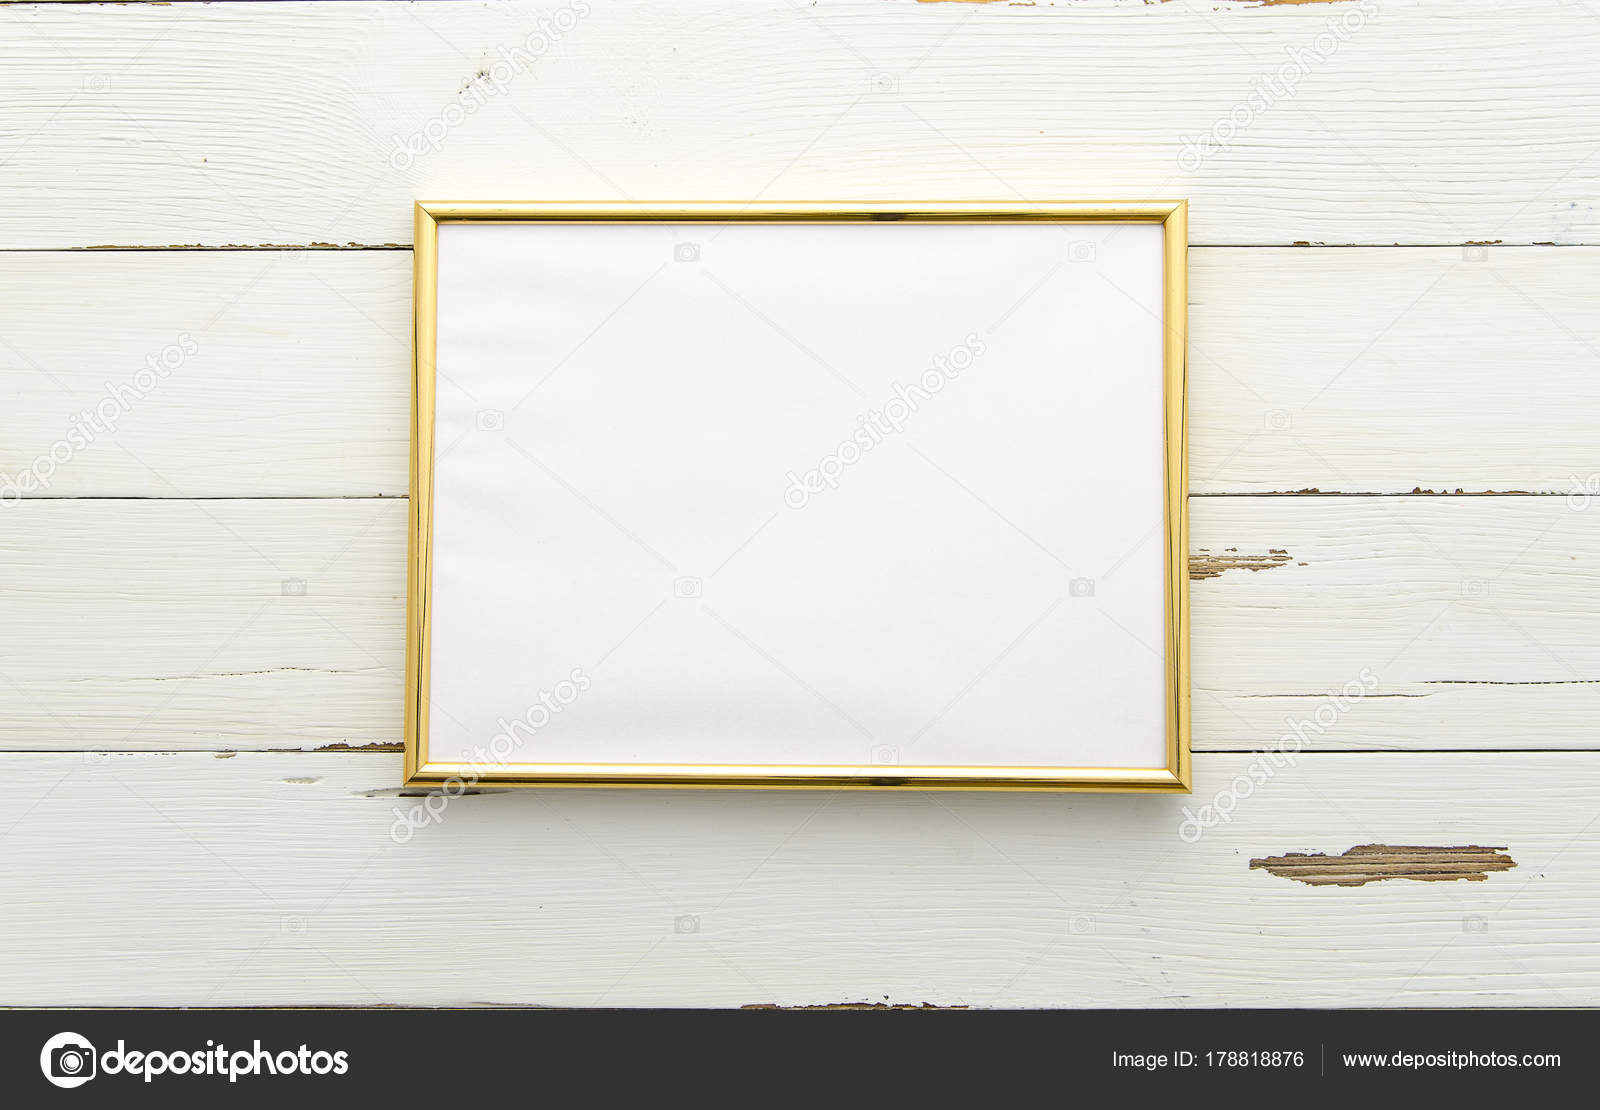 Golden photo frame for painting or picture on white wooden ...